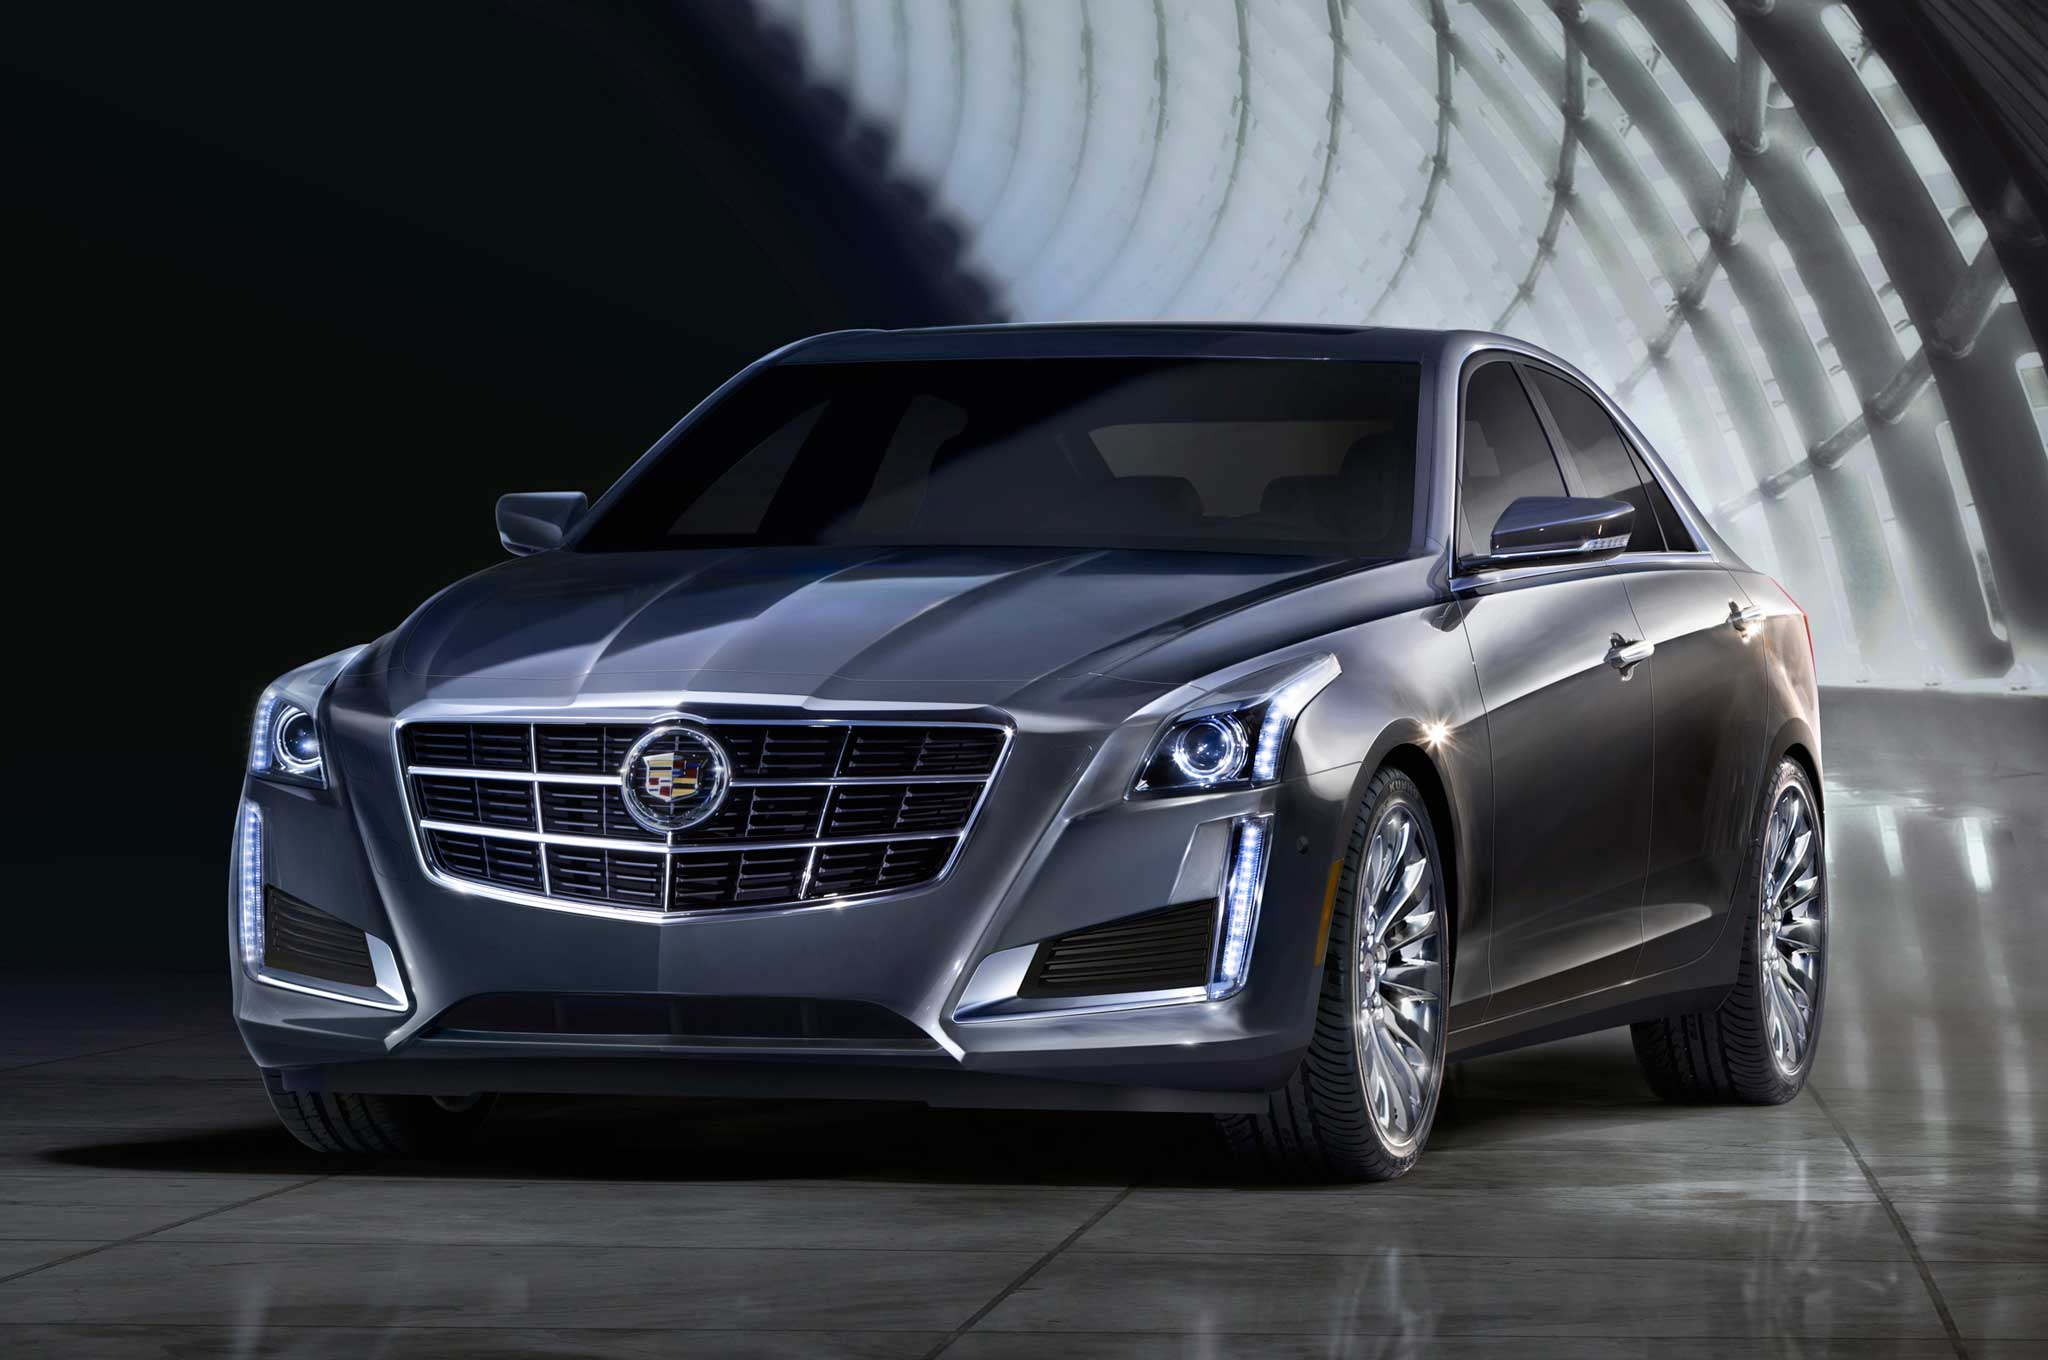 2014 Cadillac CTS Front Three Quarter1